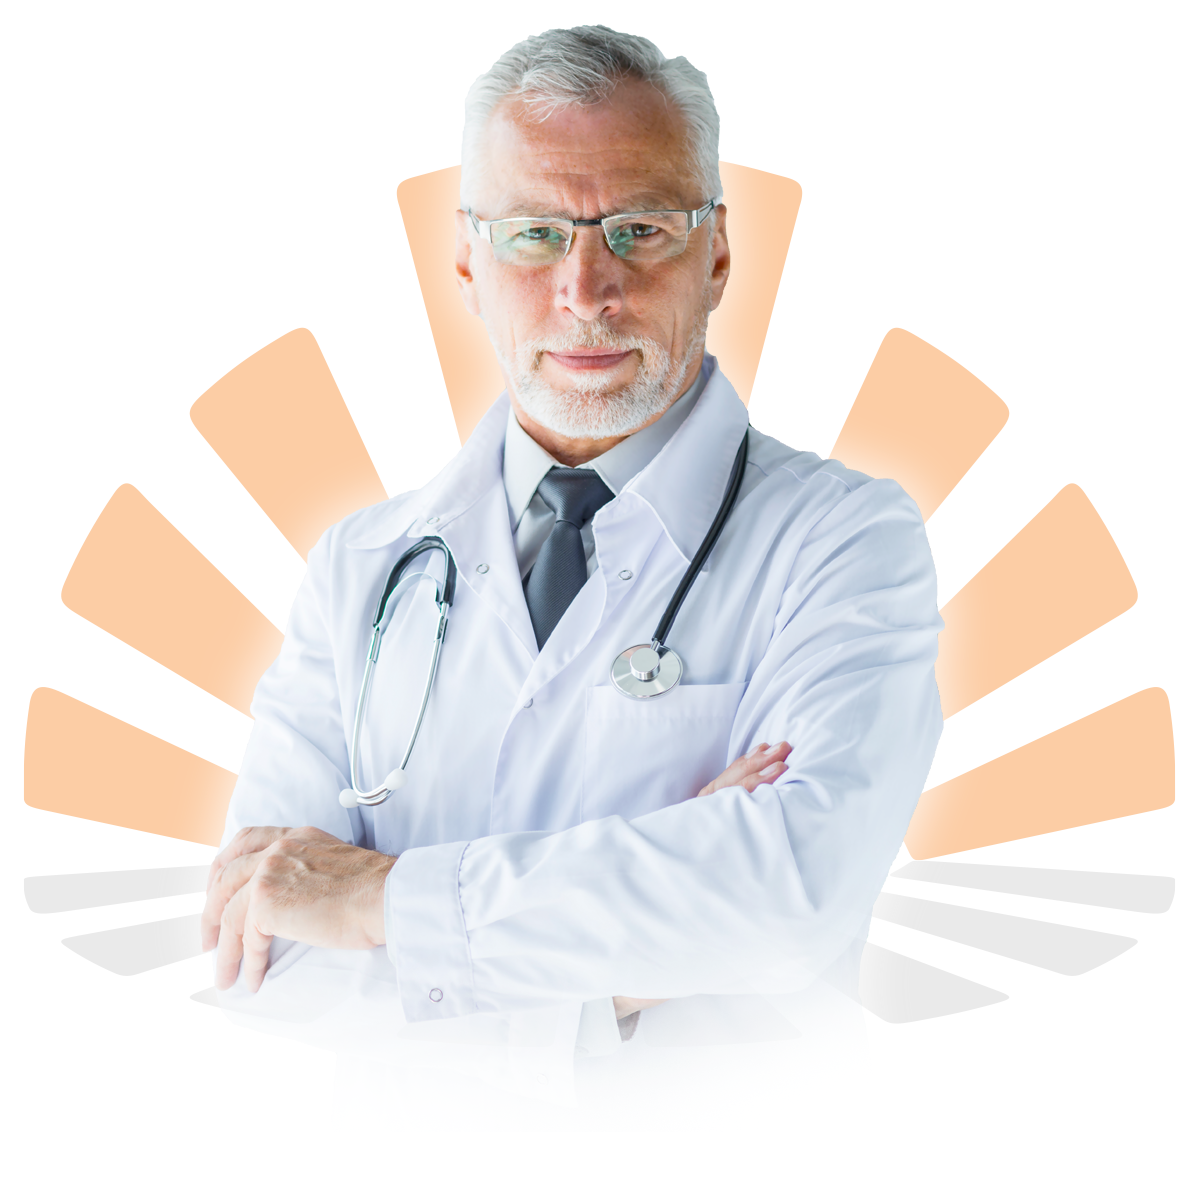 Male Doctor with eye glasses